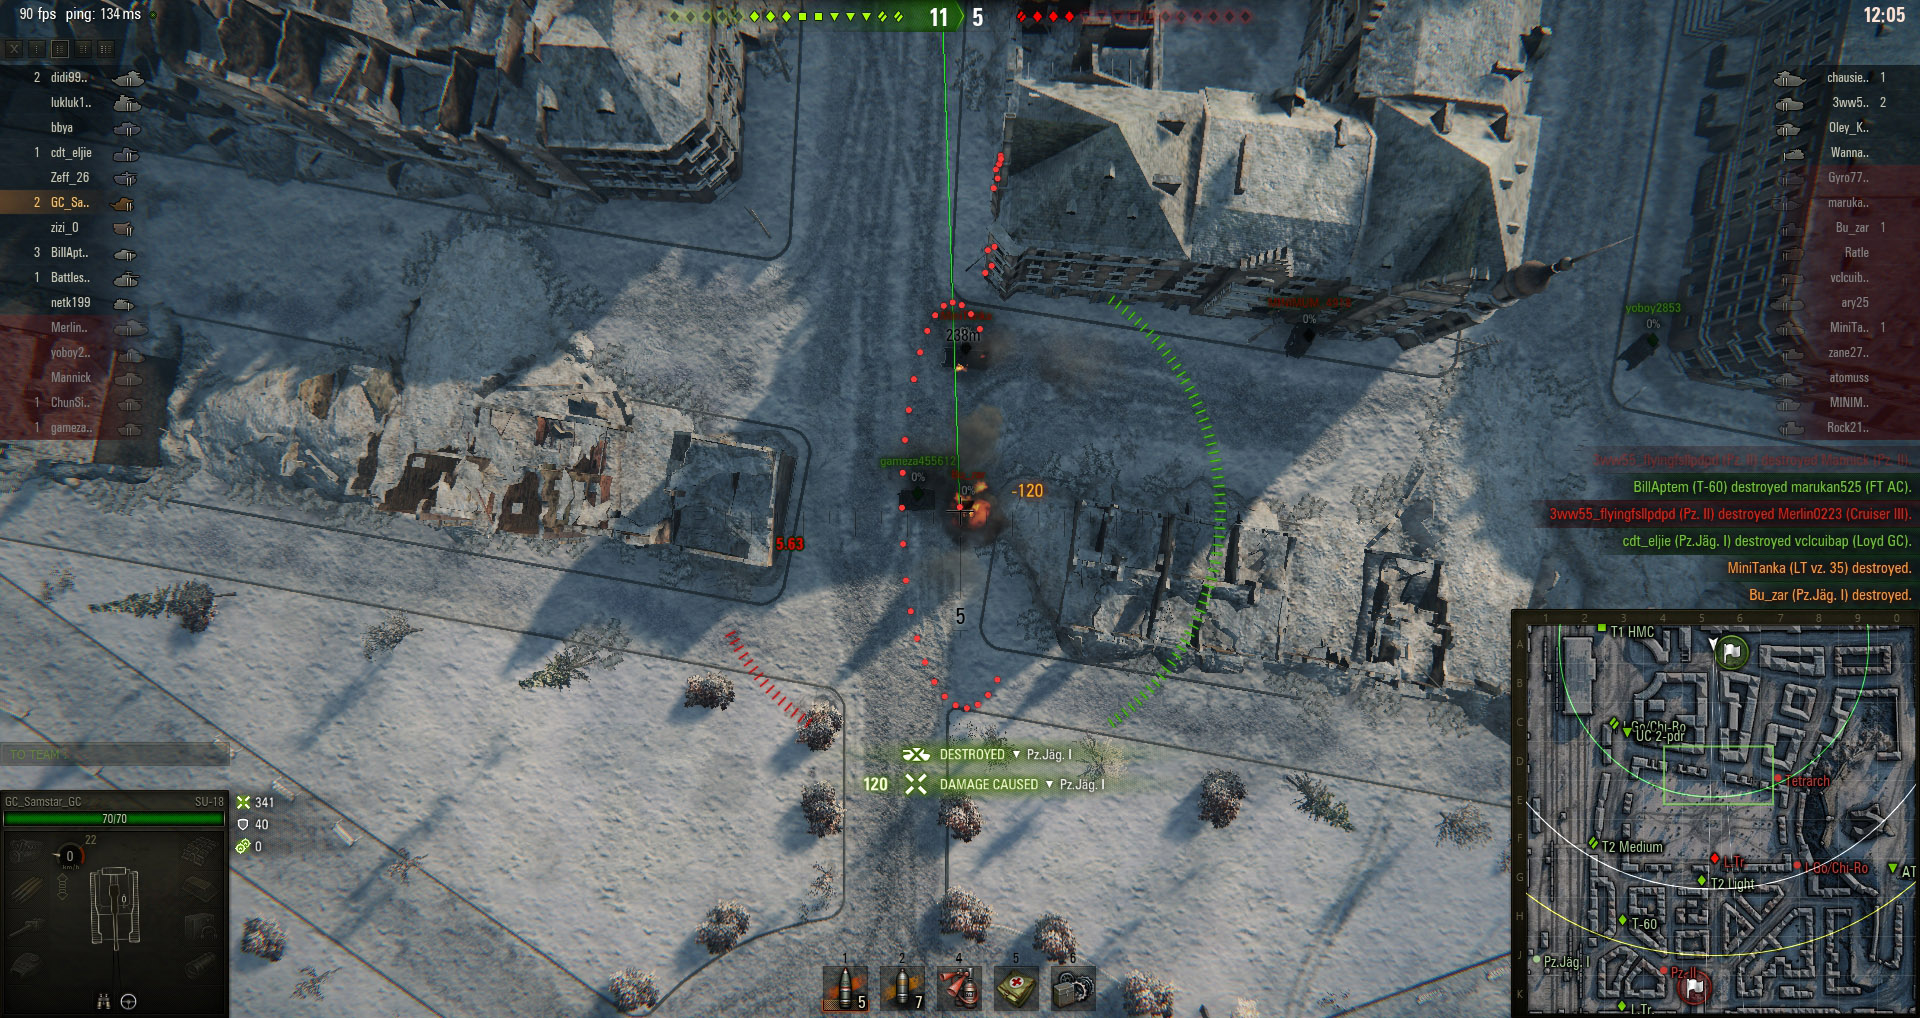 Being able to reload and aim quickly means enemy tanks have less opportunity to escape your attacks.